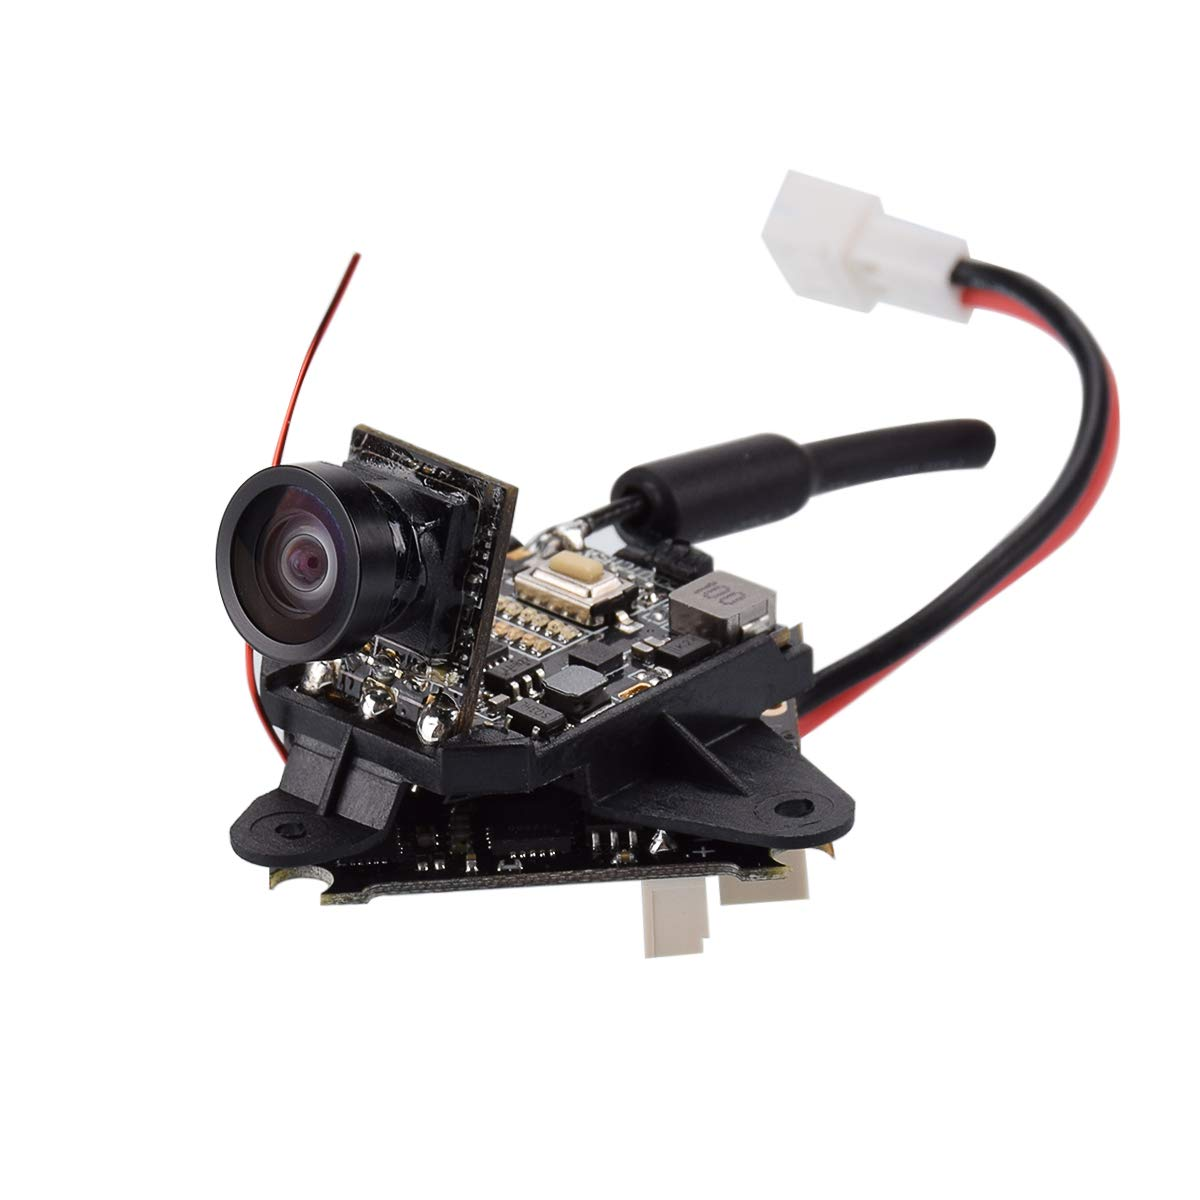 BETAFPV BetaCube F4 FC Brushed Frsky Receiver OSD Smart Audio Z02 FPV AIO 5.8G VTX Camera with Cam Mount for Tiny Whoop Brushed Quads Beta75S Beta65S